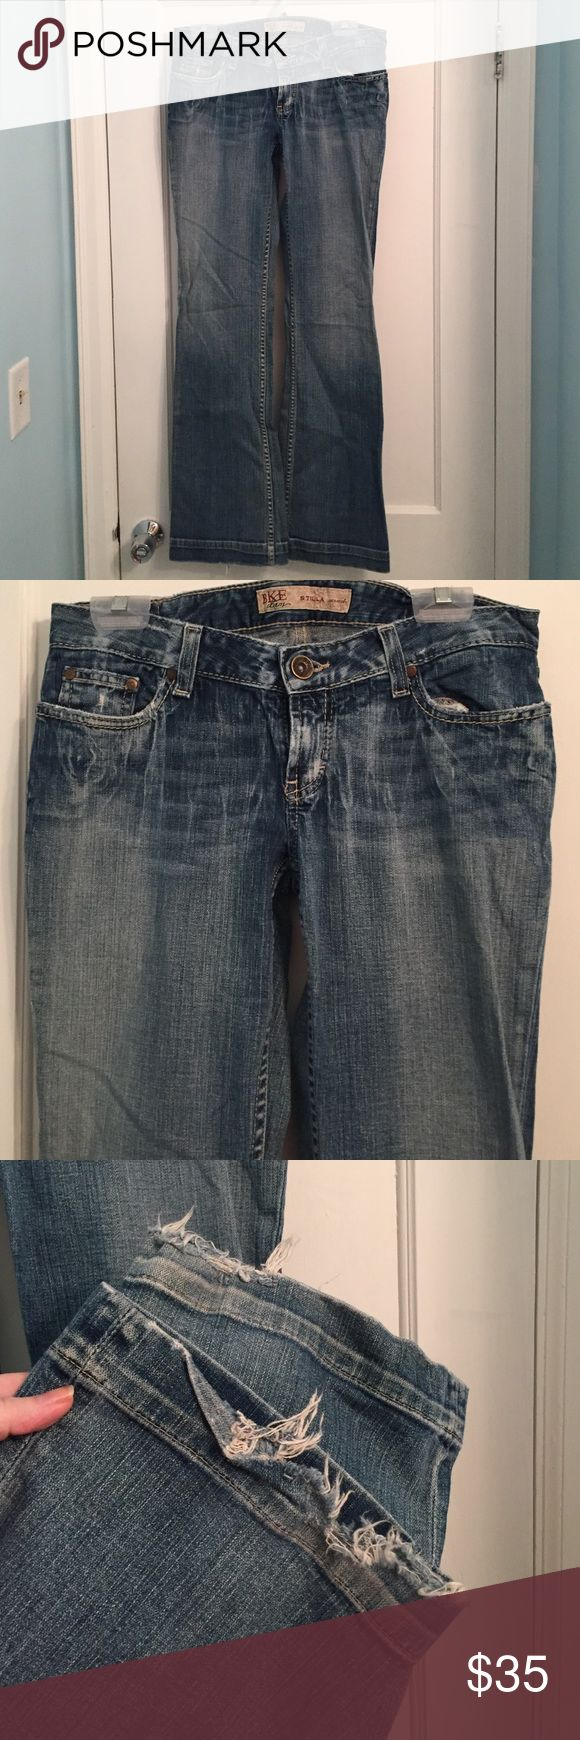 BKE Denim Stella Stretch Boot Cut Jeans Wear and tear at bottom of pant legs. No stains or holes. 29x33.5 BKE Jeans Boot Cut